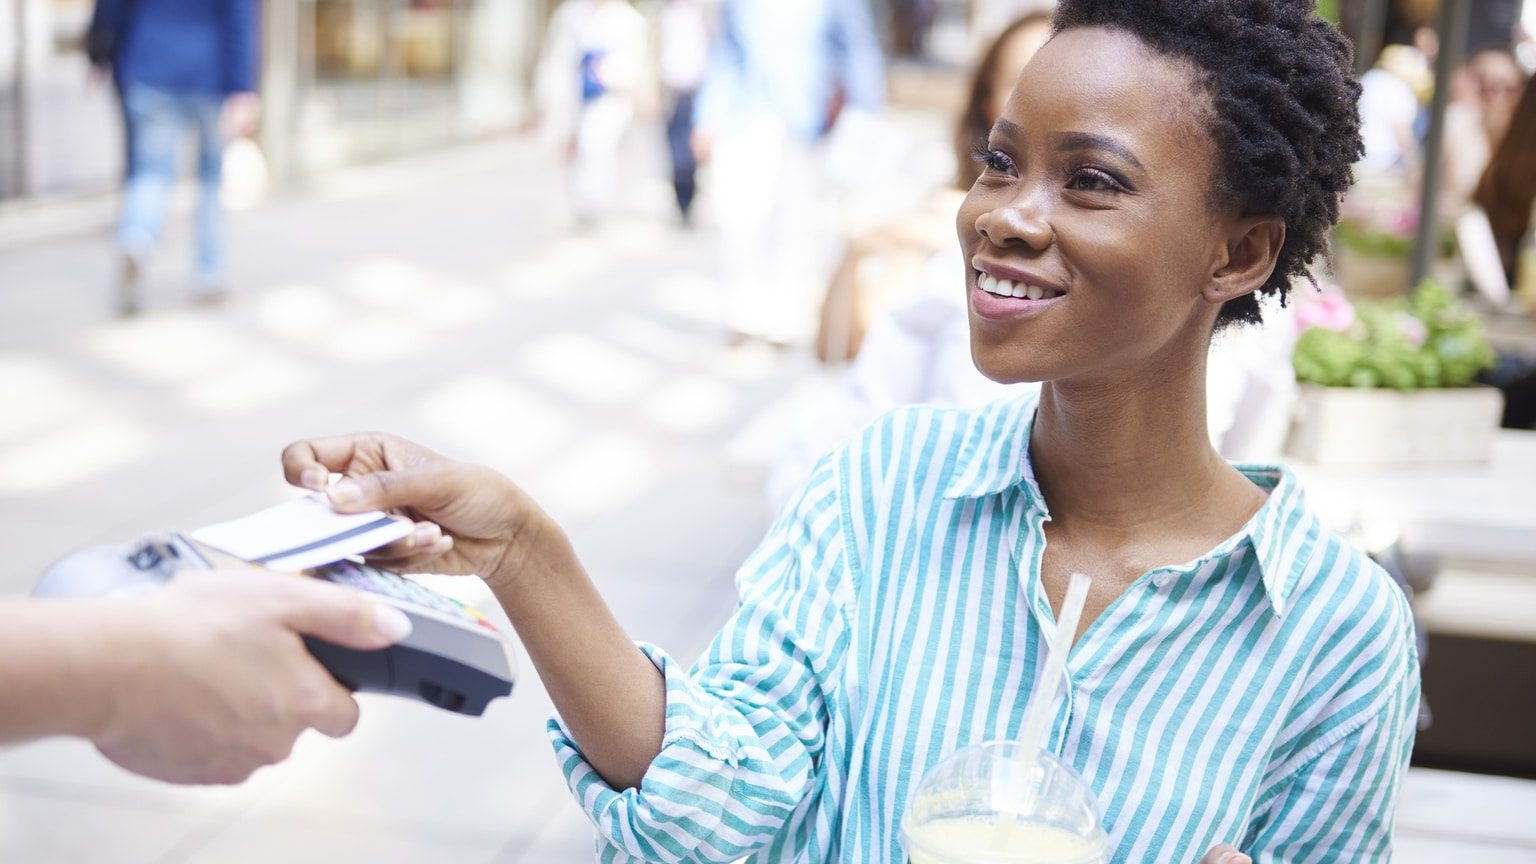 Young woman paying for her drink with a credit card